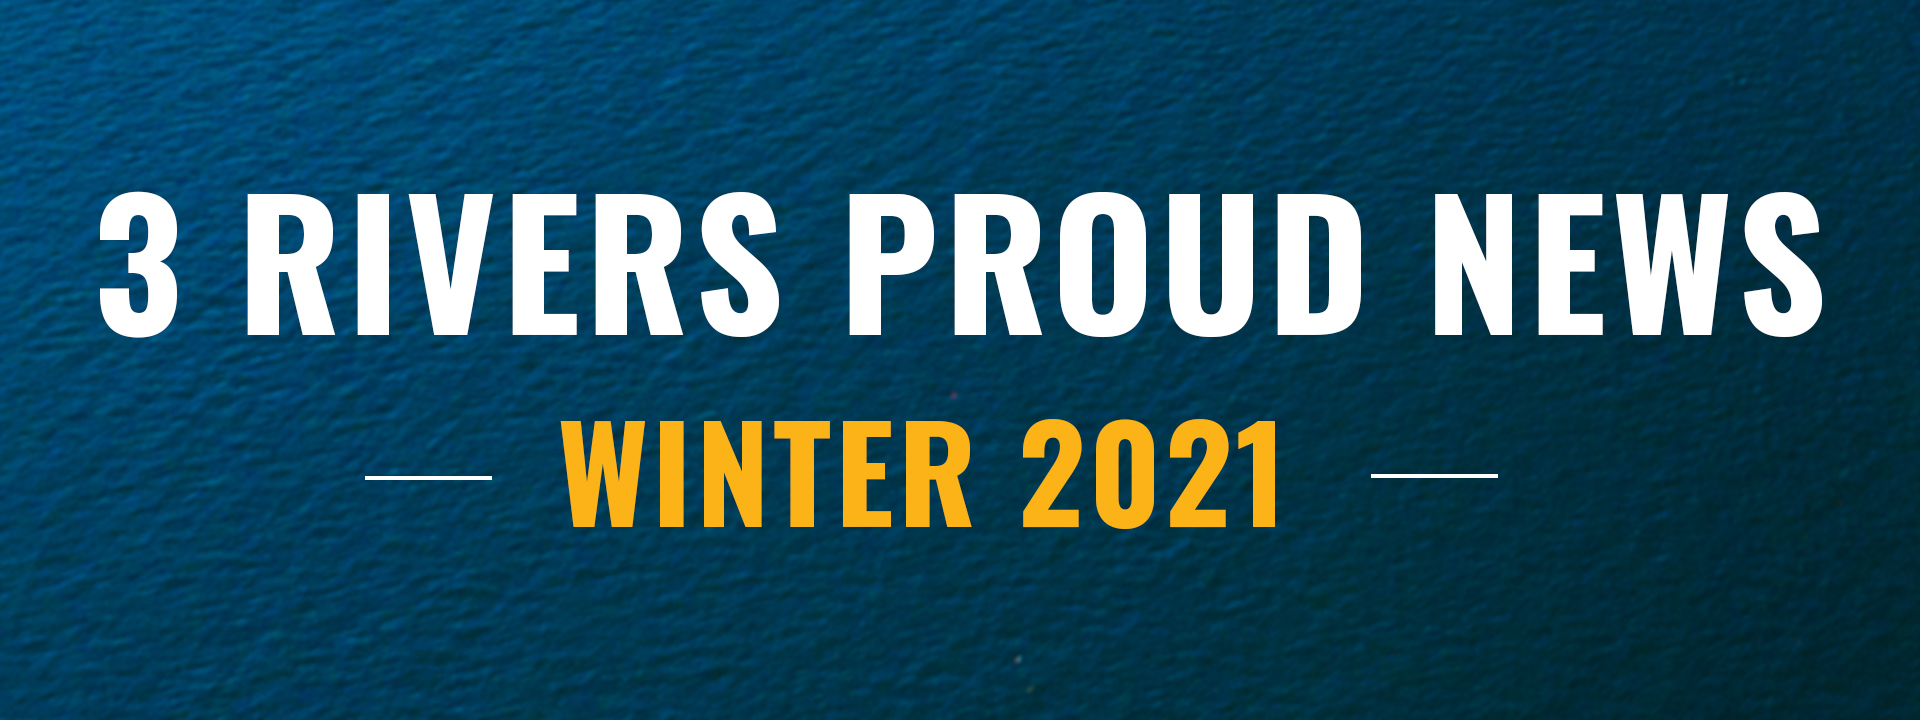 3 Rivers Proud News - Winter 2021